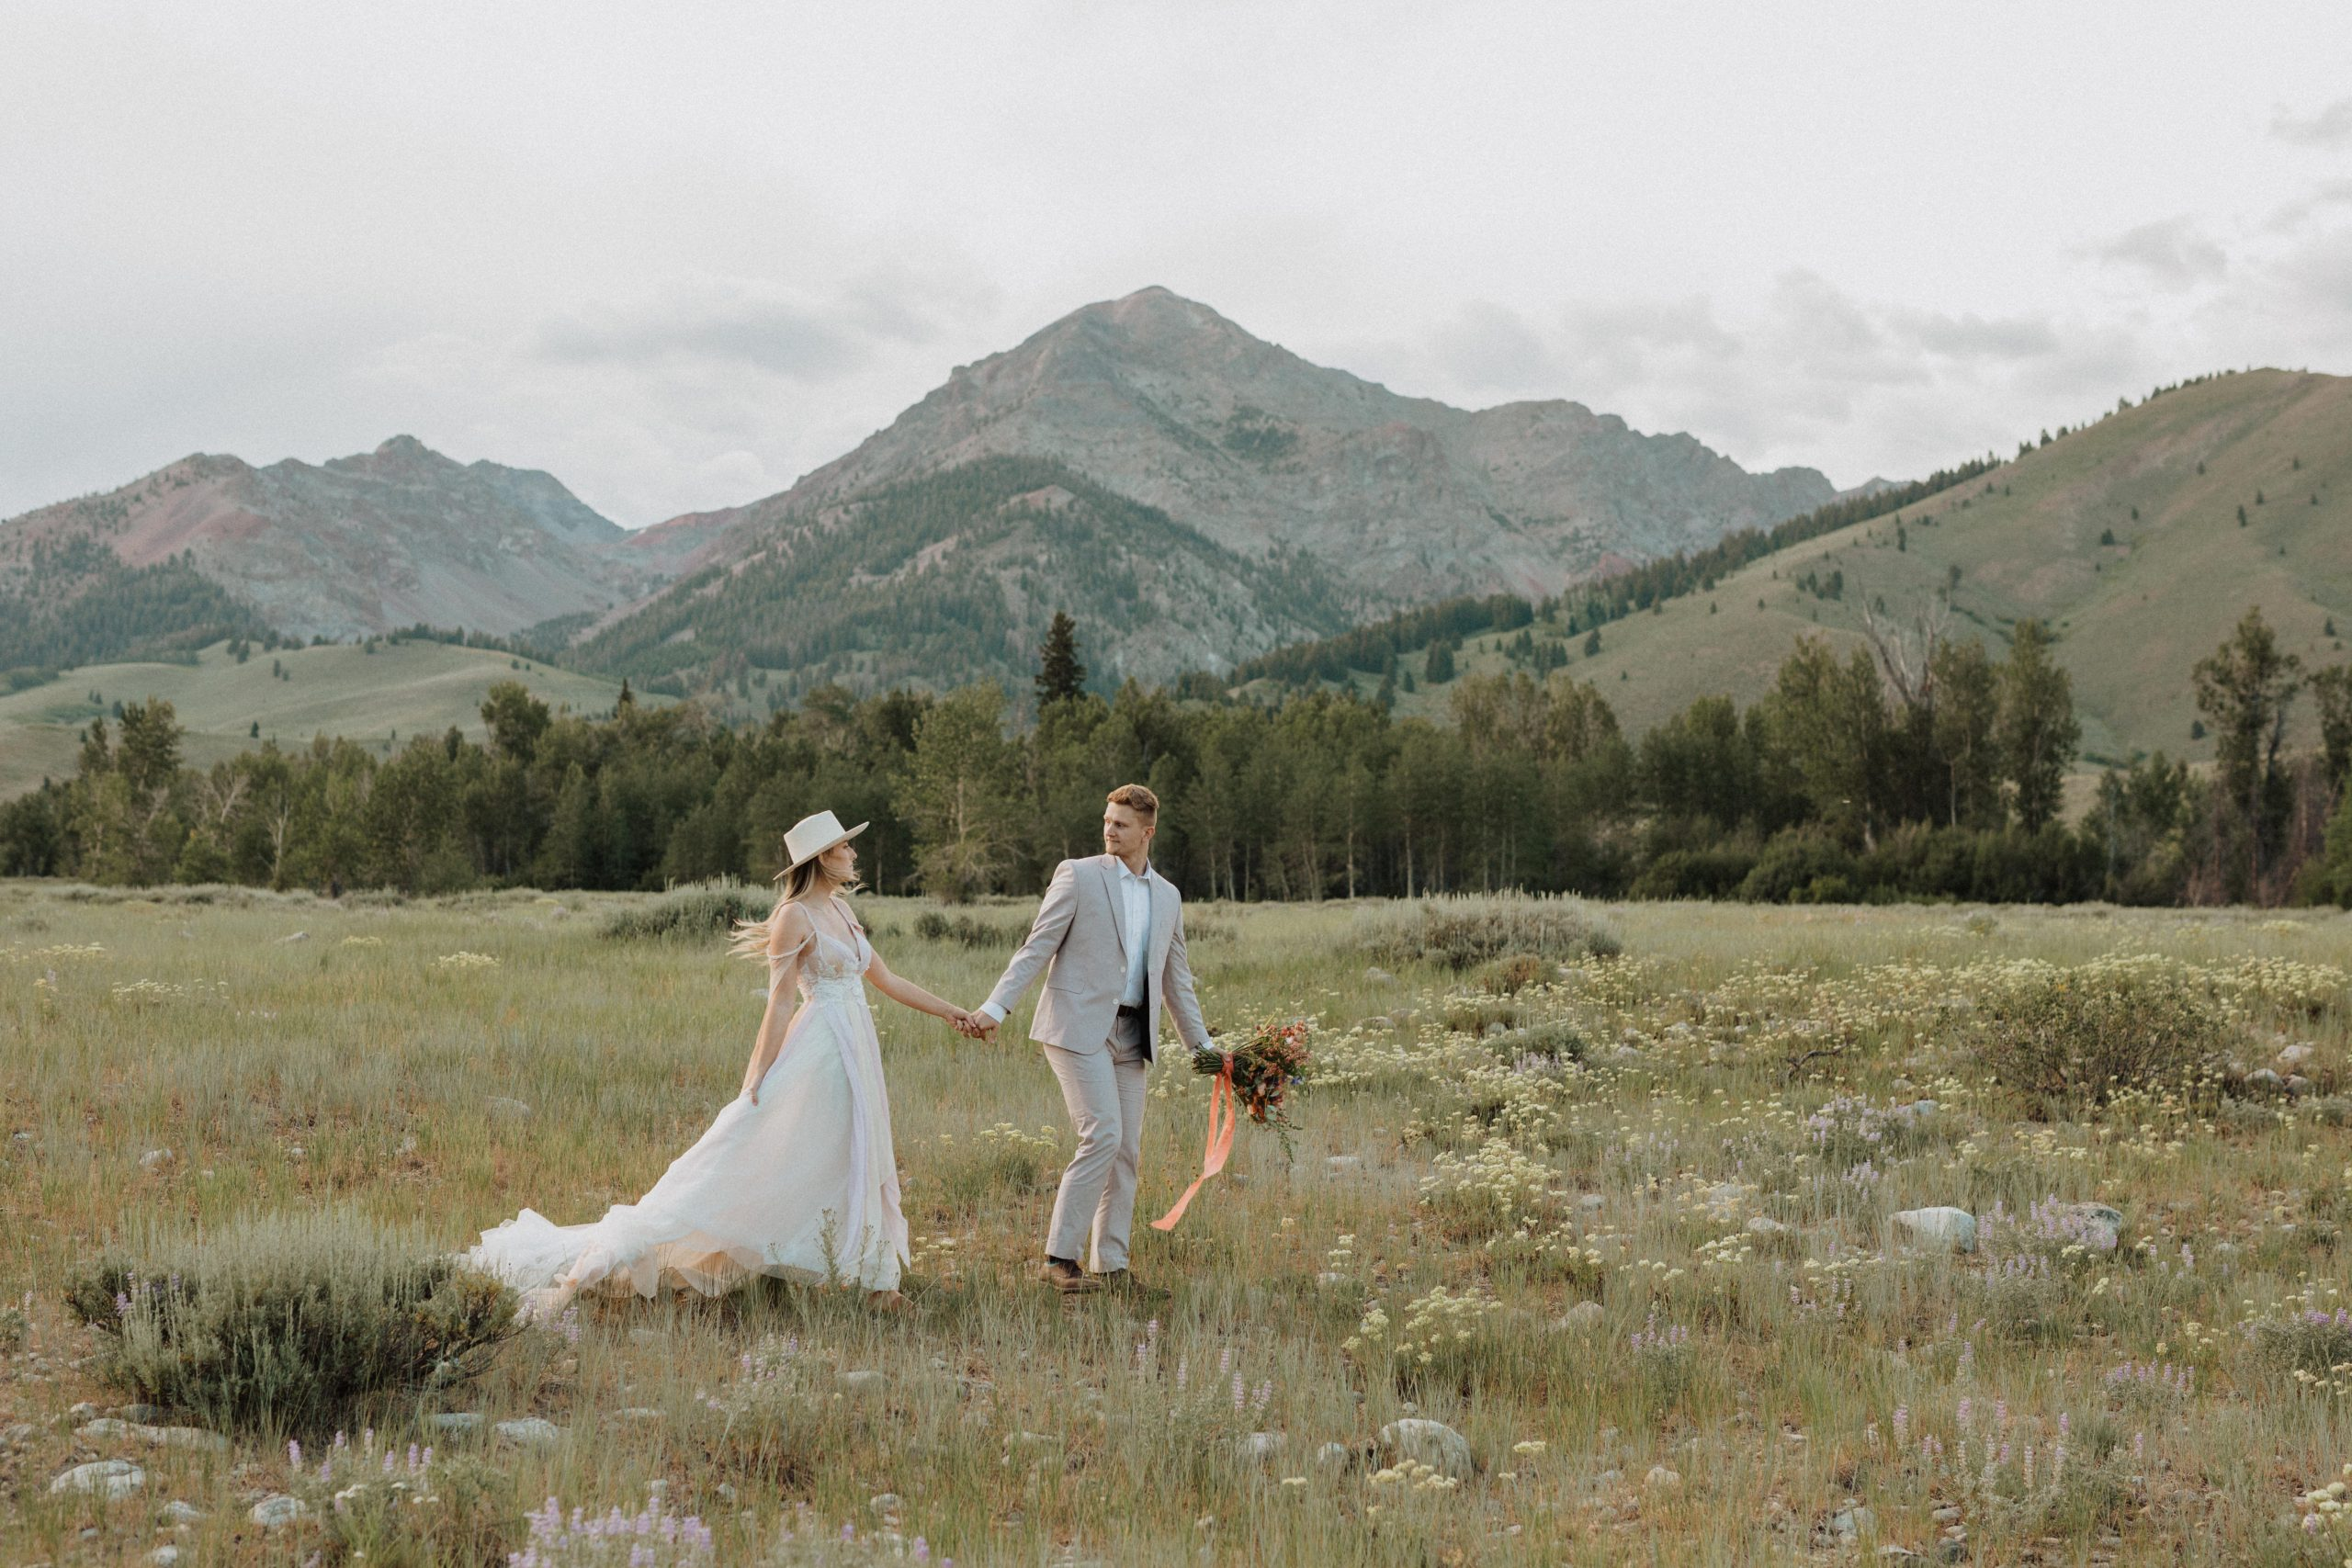 Bride and groom strolling through the grassland hand-in-hand at Sawtooth Wilderness, taken by Alexa Ann Photography